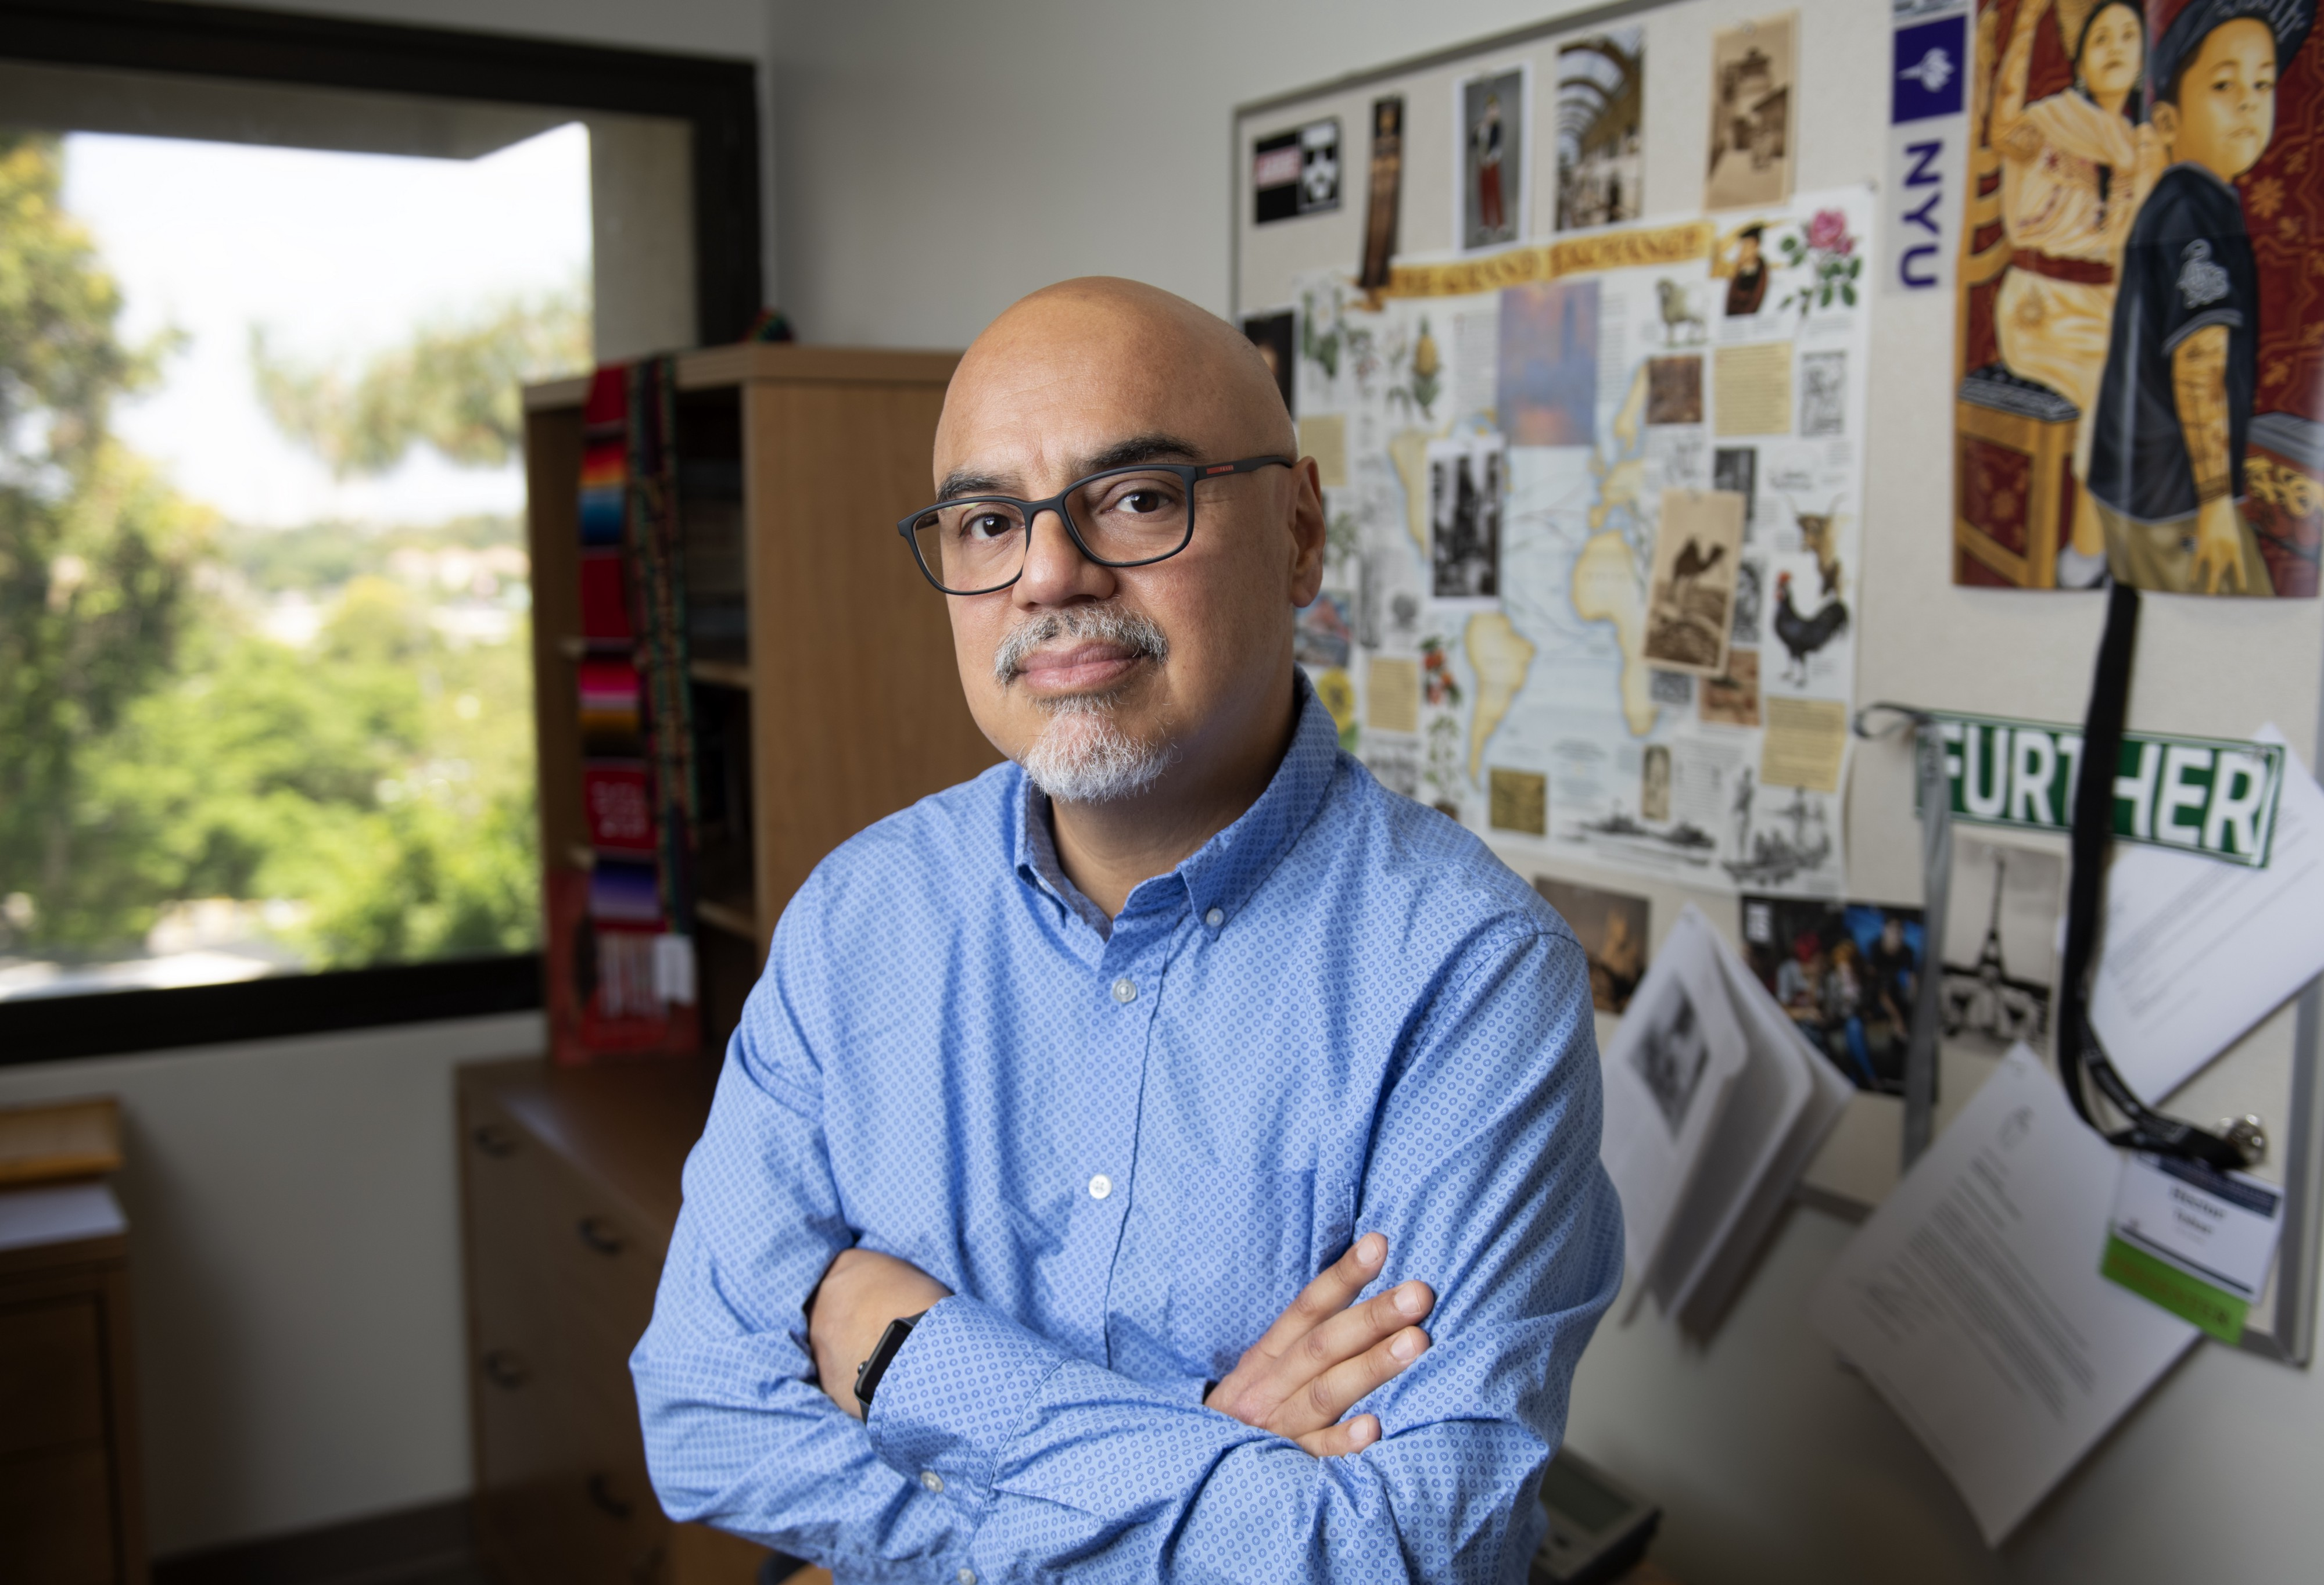 Héctor Tobar stands in his office with his arms crossed.